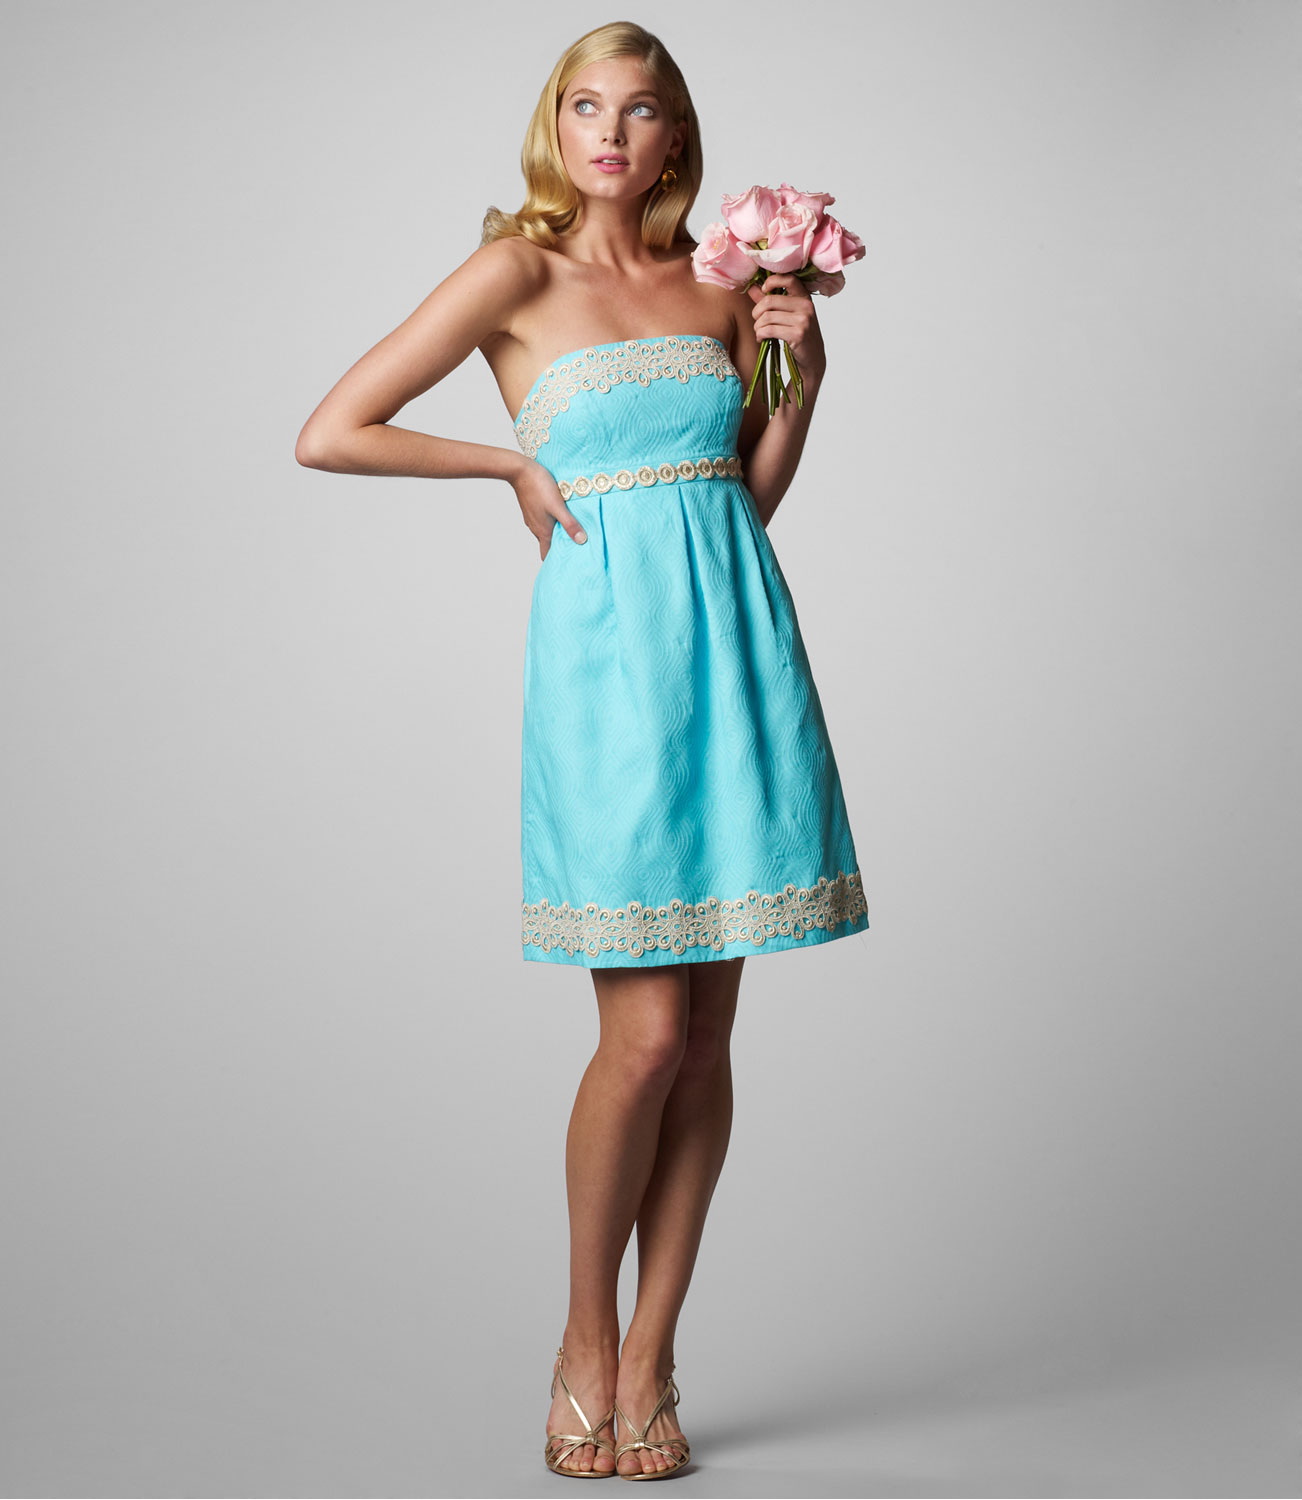 Lilly Pulitzer 2011 Spring Bridal Collection | The FashionBrides